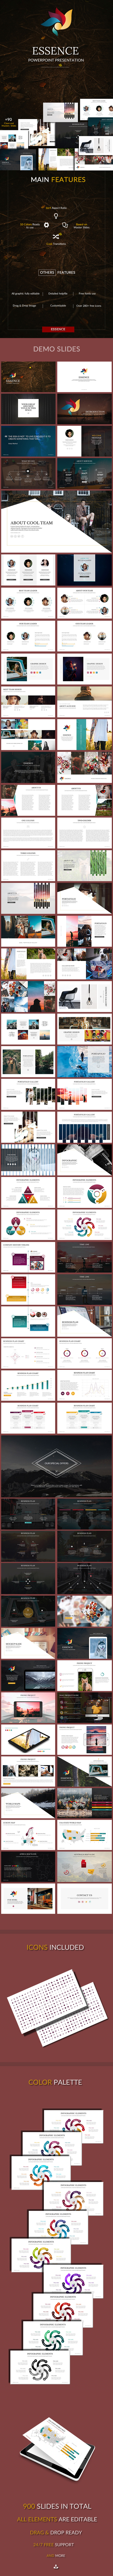 GraphicRiver Essence Powerpoint Template 20663292